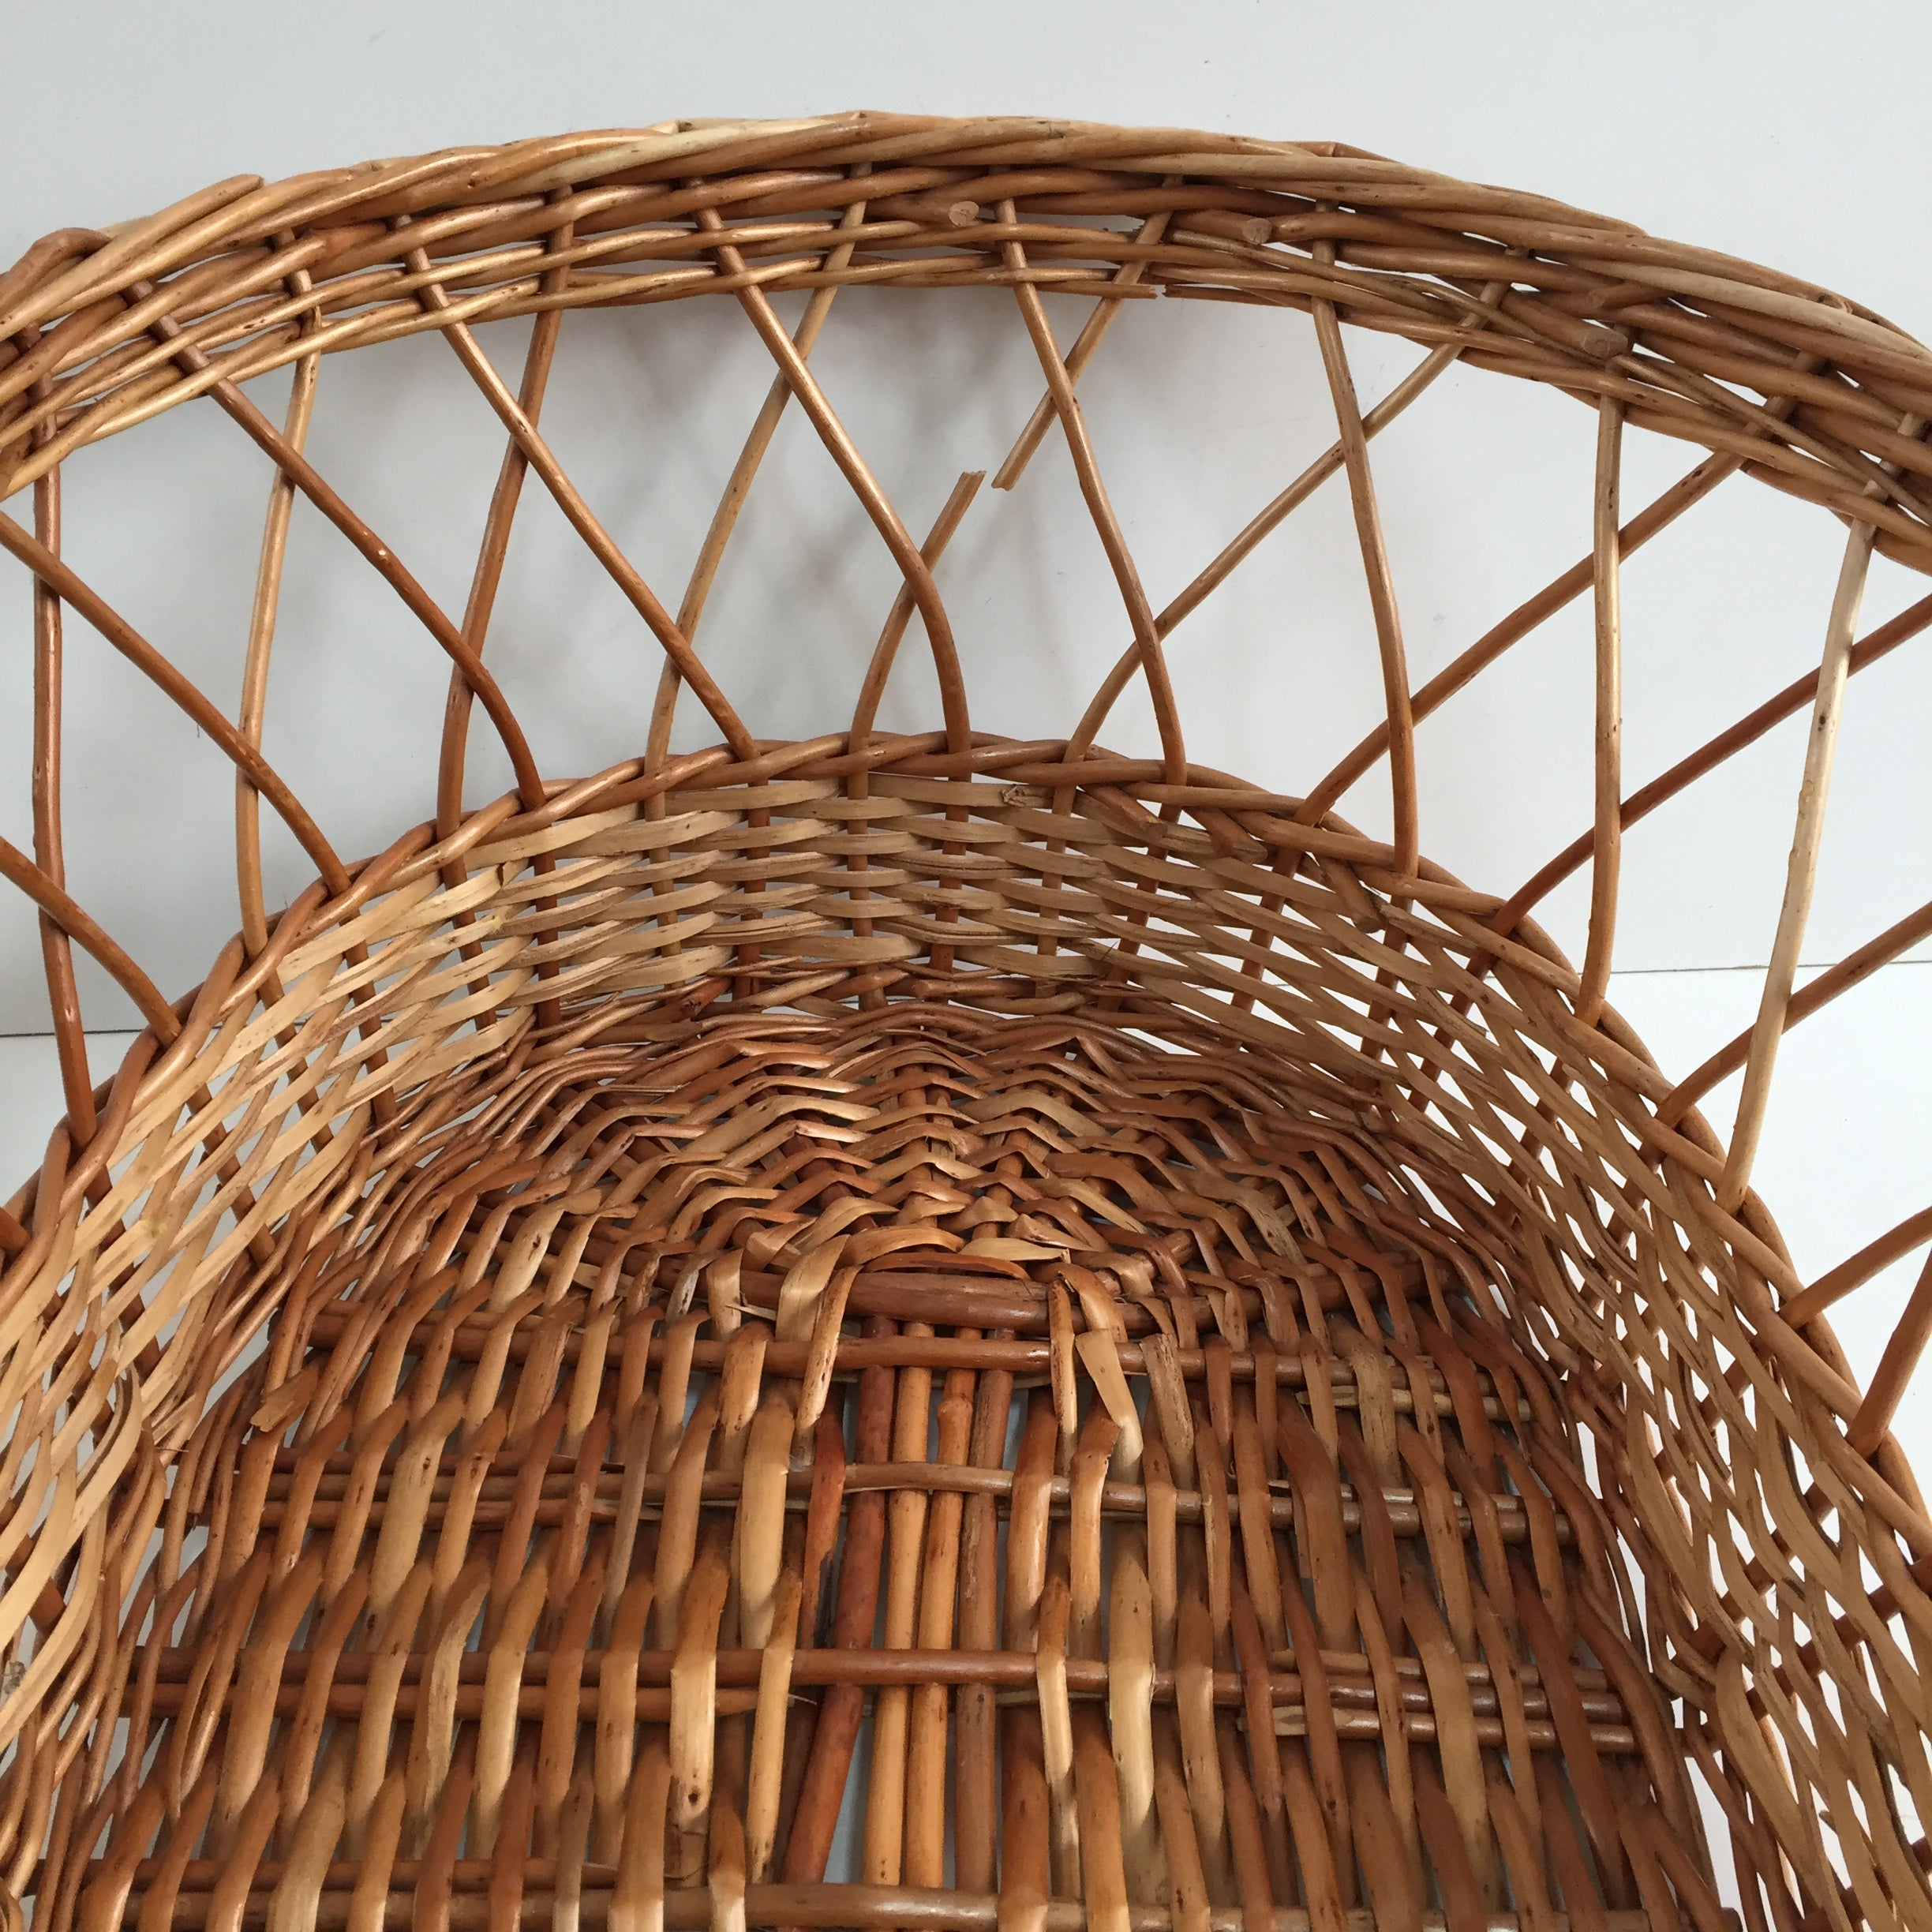 Vintage Rattan Wicker Baby Carry Cot - Couffin Rotin Vintage - Free Delivery UK-Livraison Gratuite France